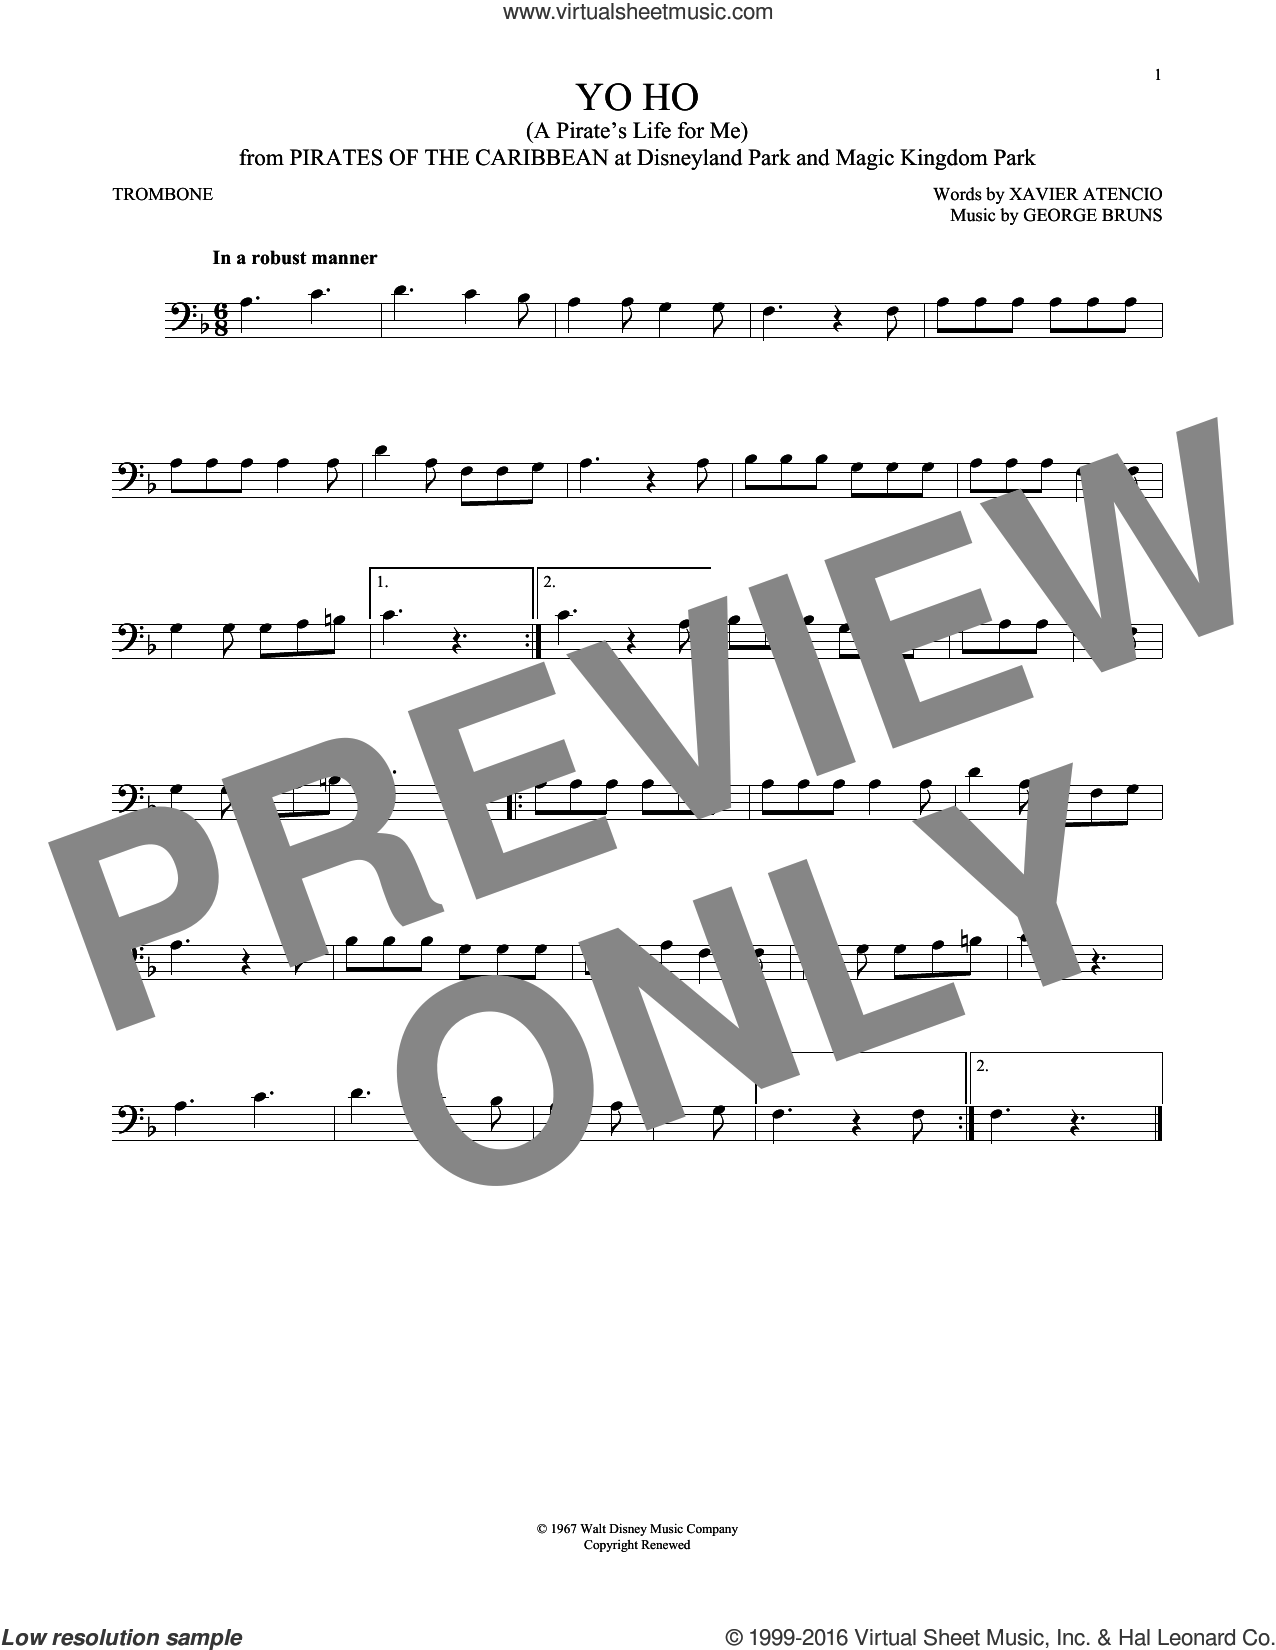 Yo Ho (A Pirate's Life For Me) sheet music for trombone solo by George Bruns and Xavier Atencio, intermediate skill level